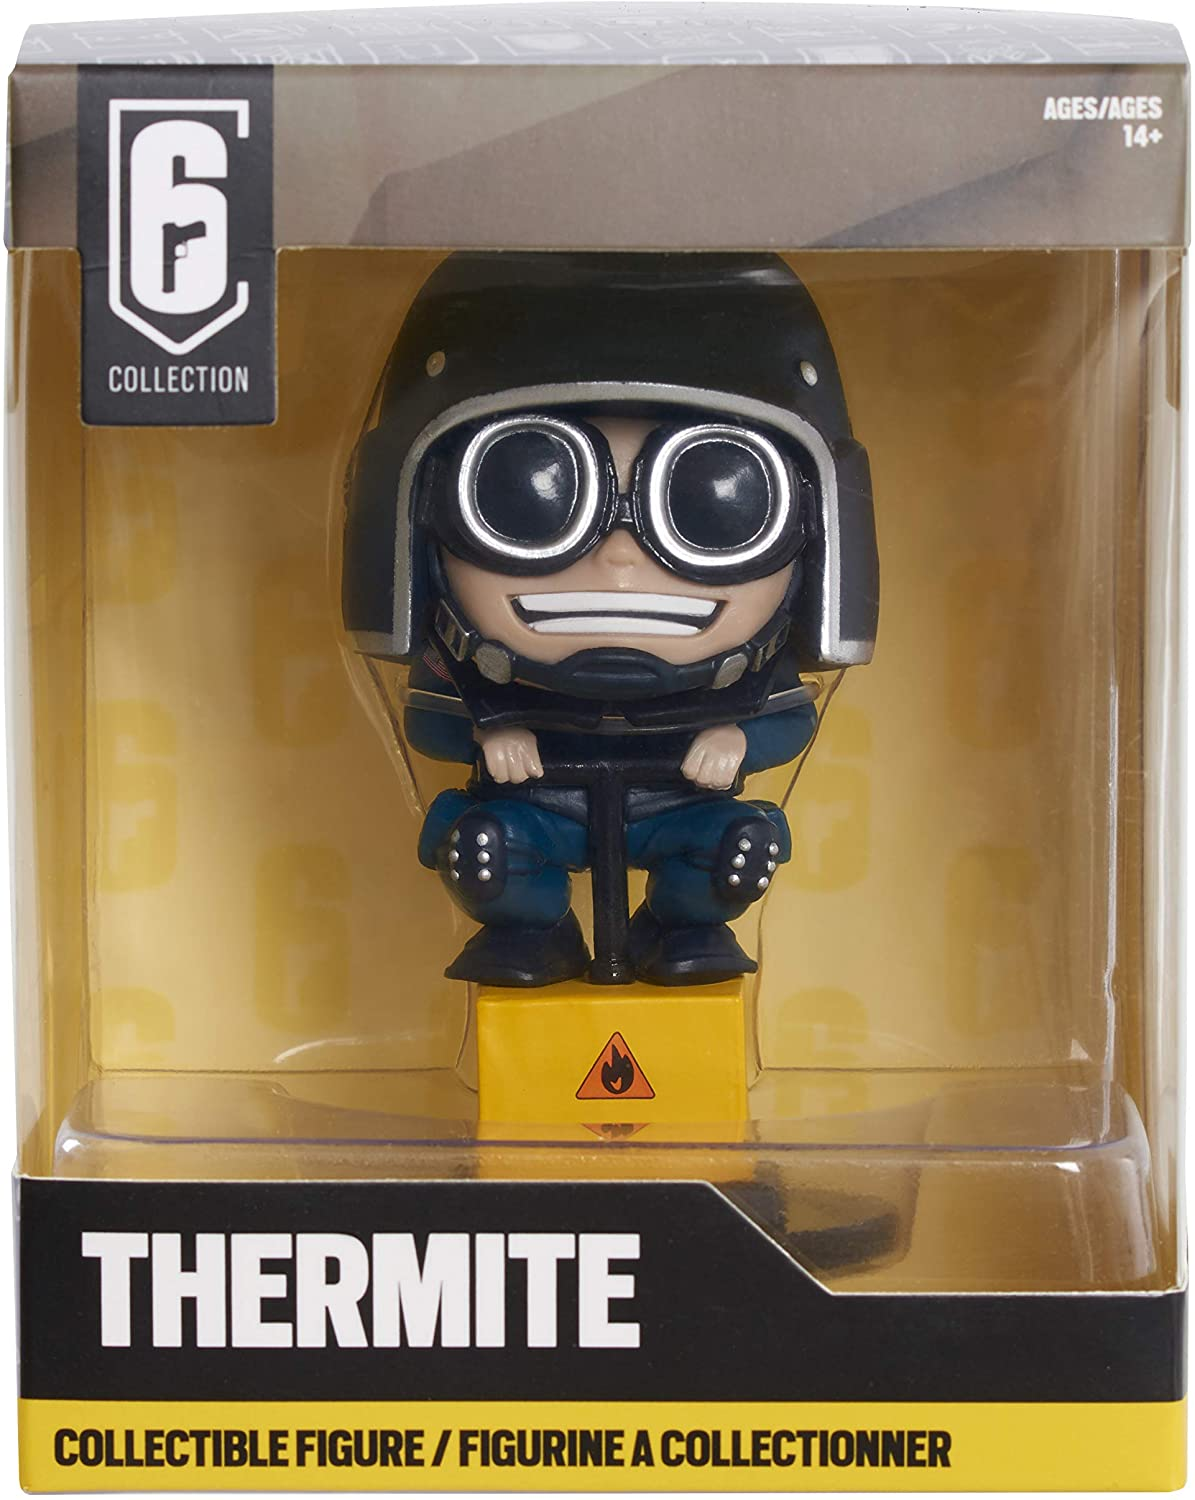 Ubisoft Six Collection Figure - Thermite